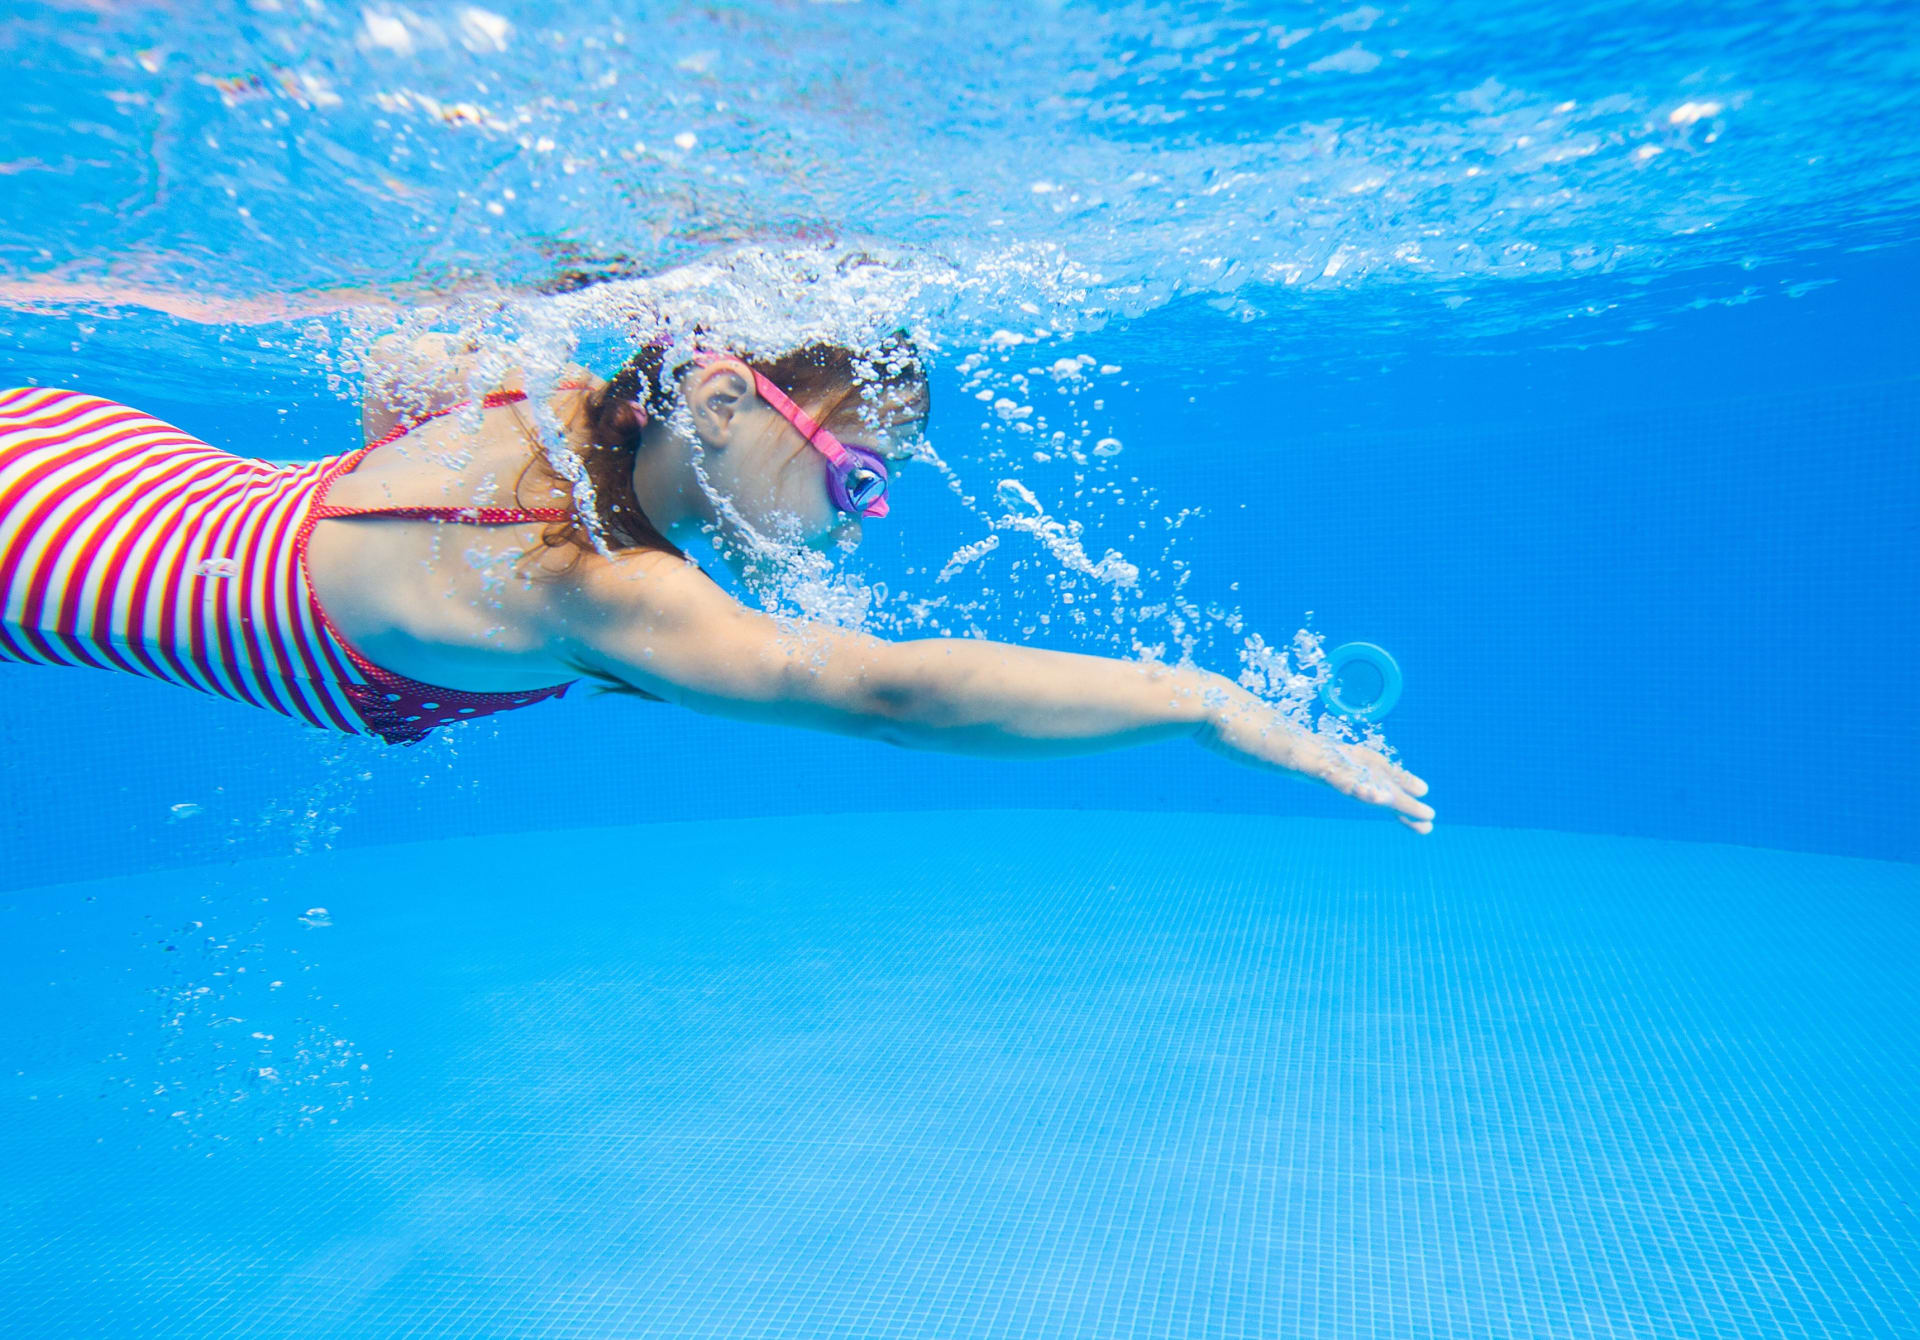 Underwater photo of a girl swimming in the pool